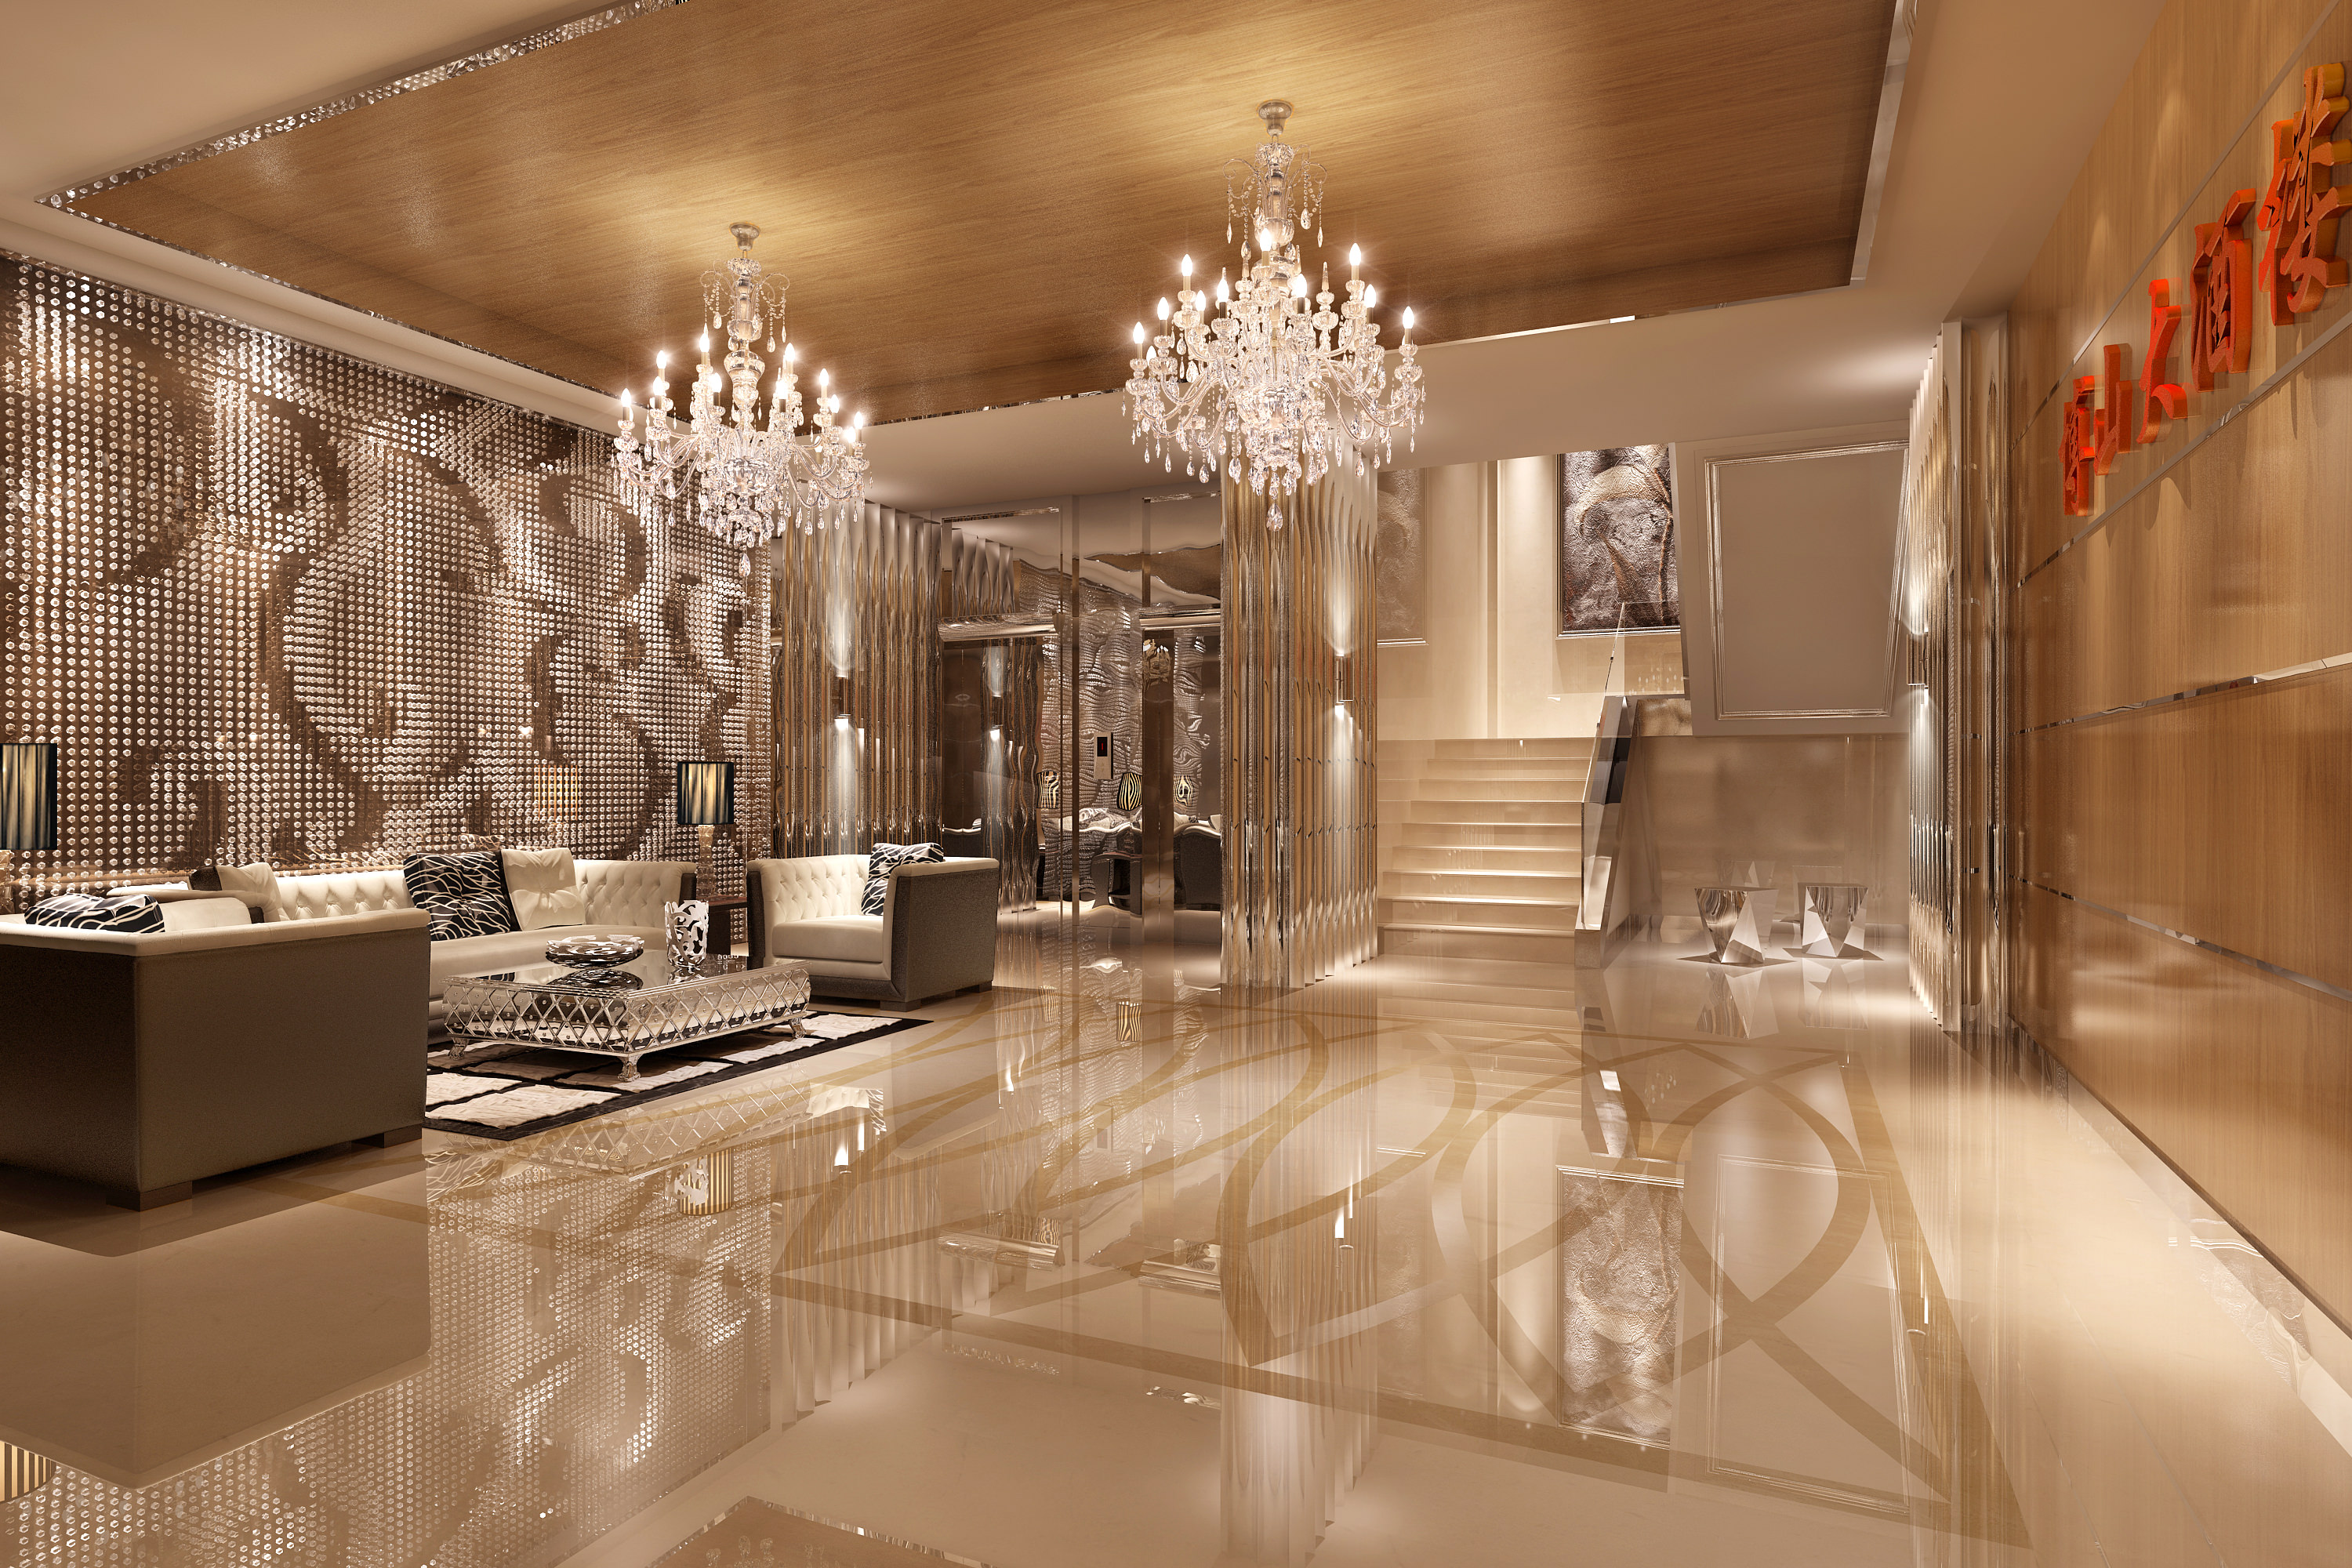 Foyer with Luxury Wall Decor 3D Model MAX   CGTrader.com